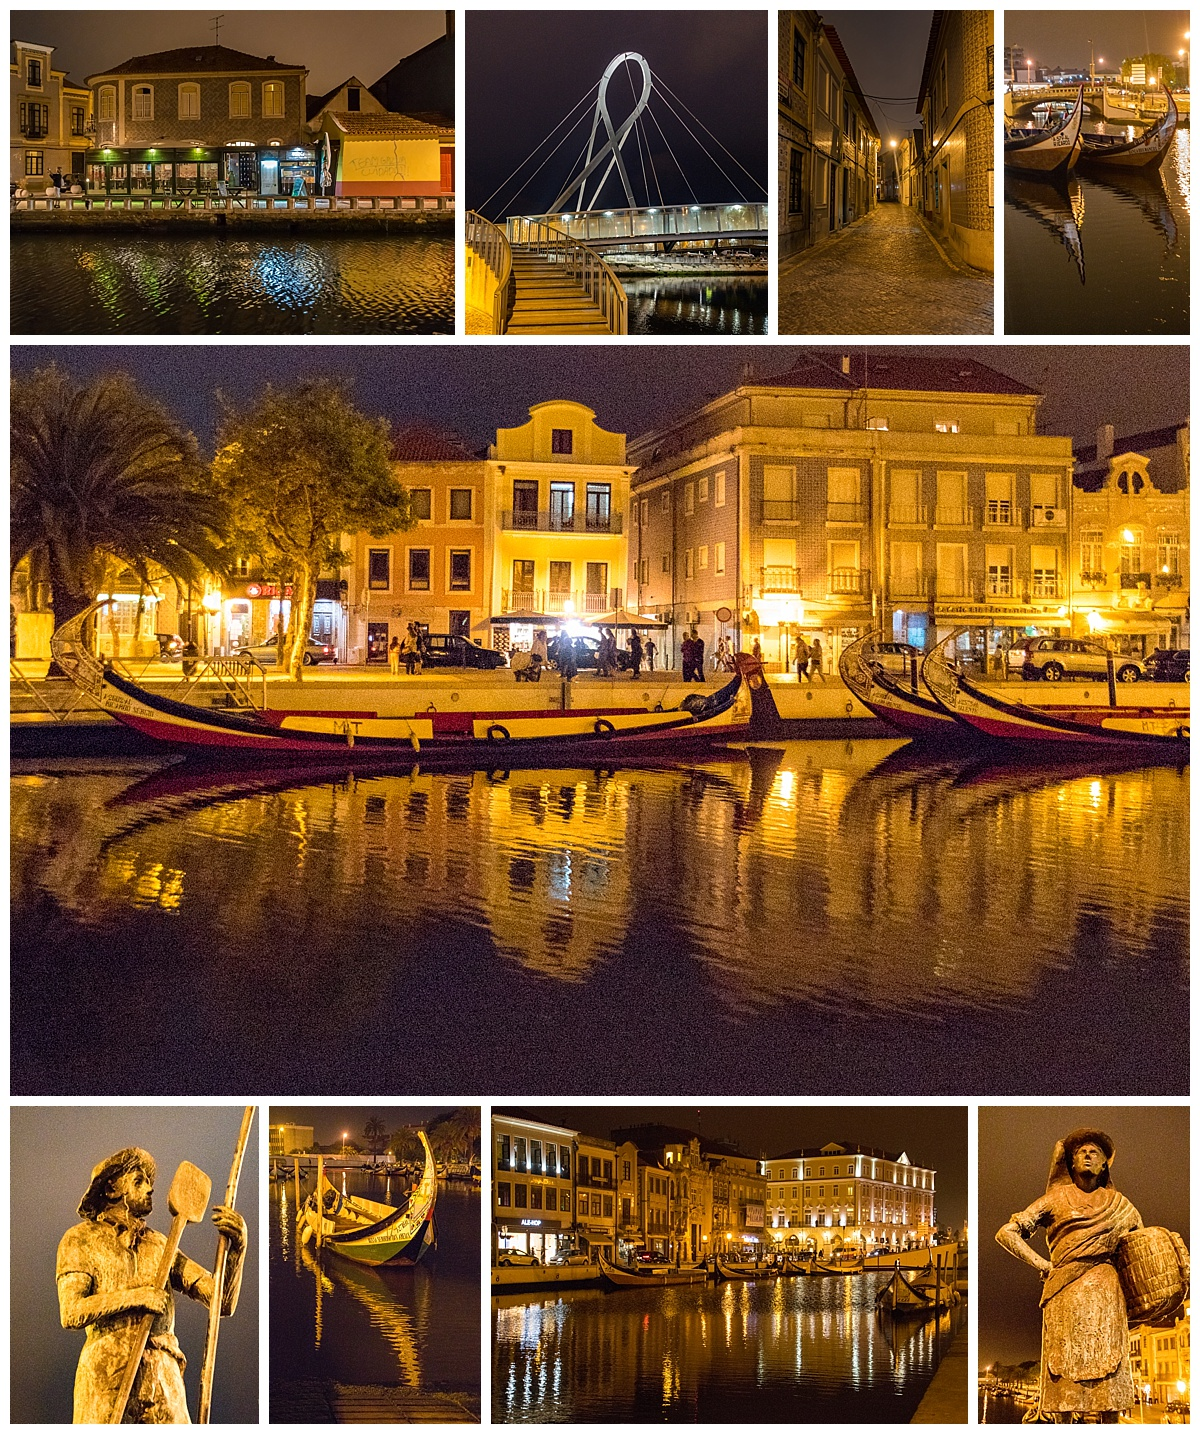 Aveiro 2 - canals at night